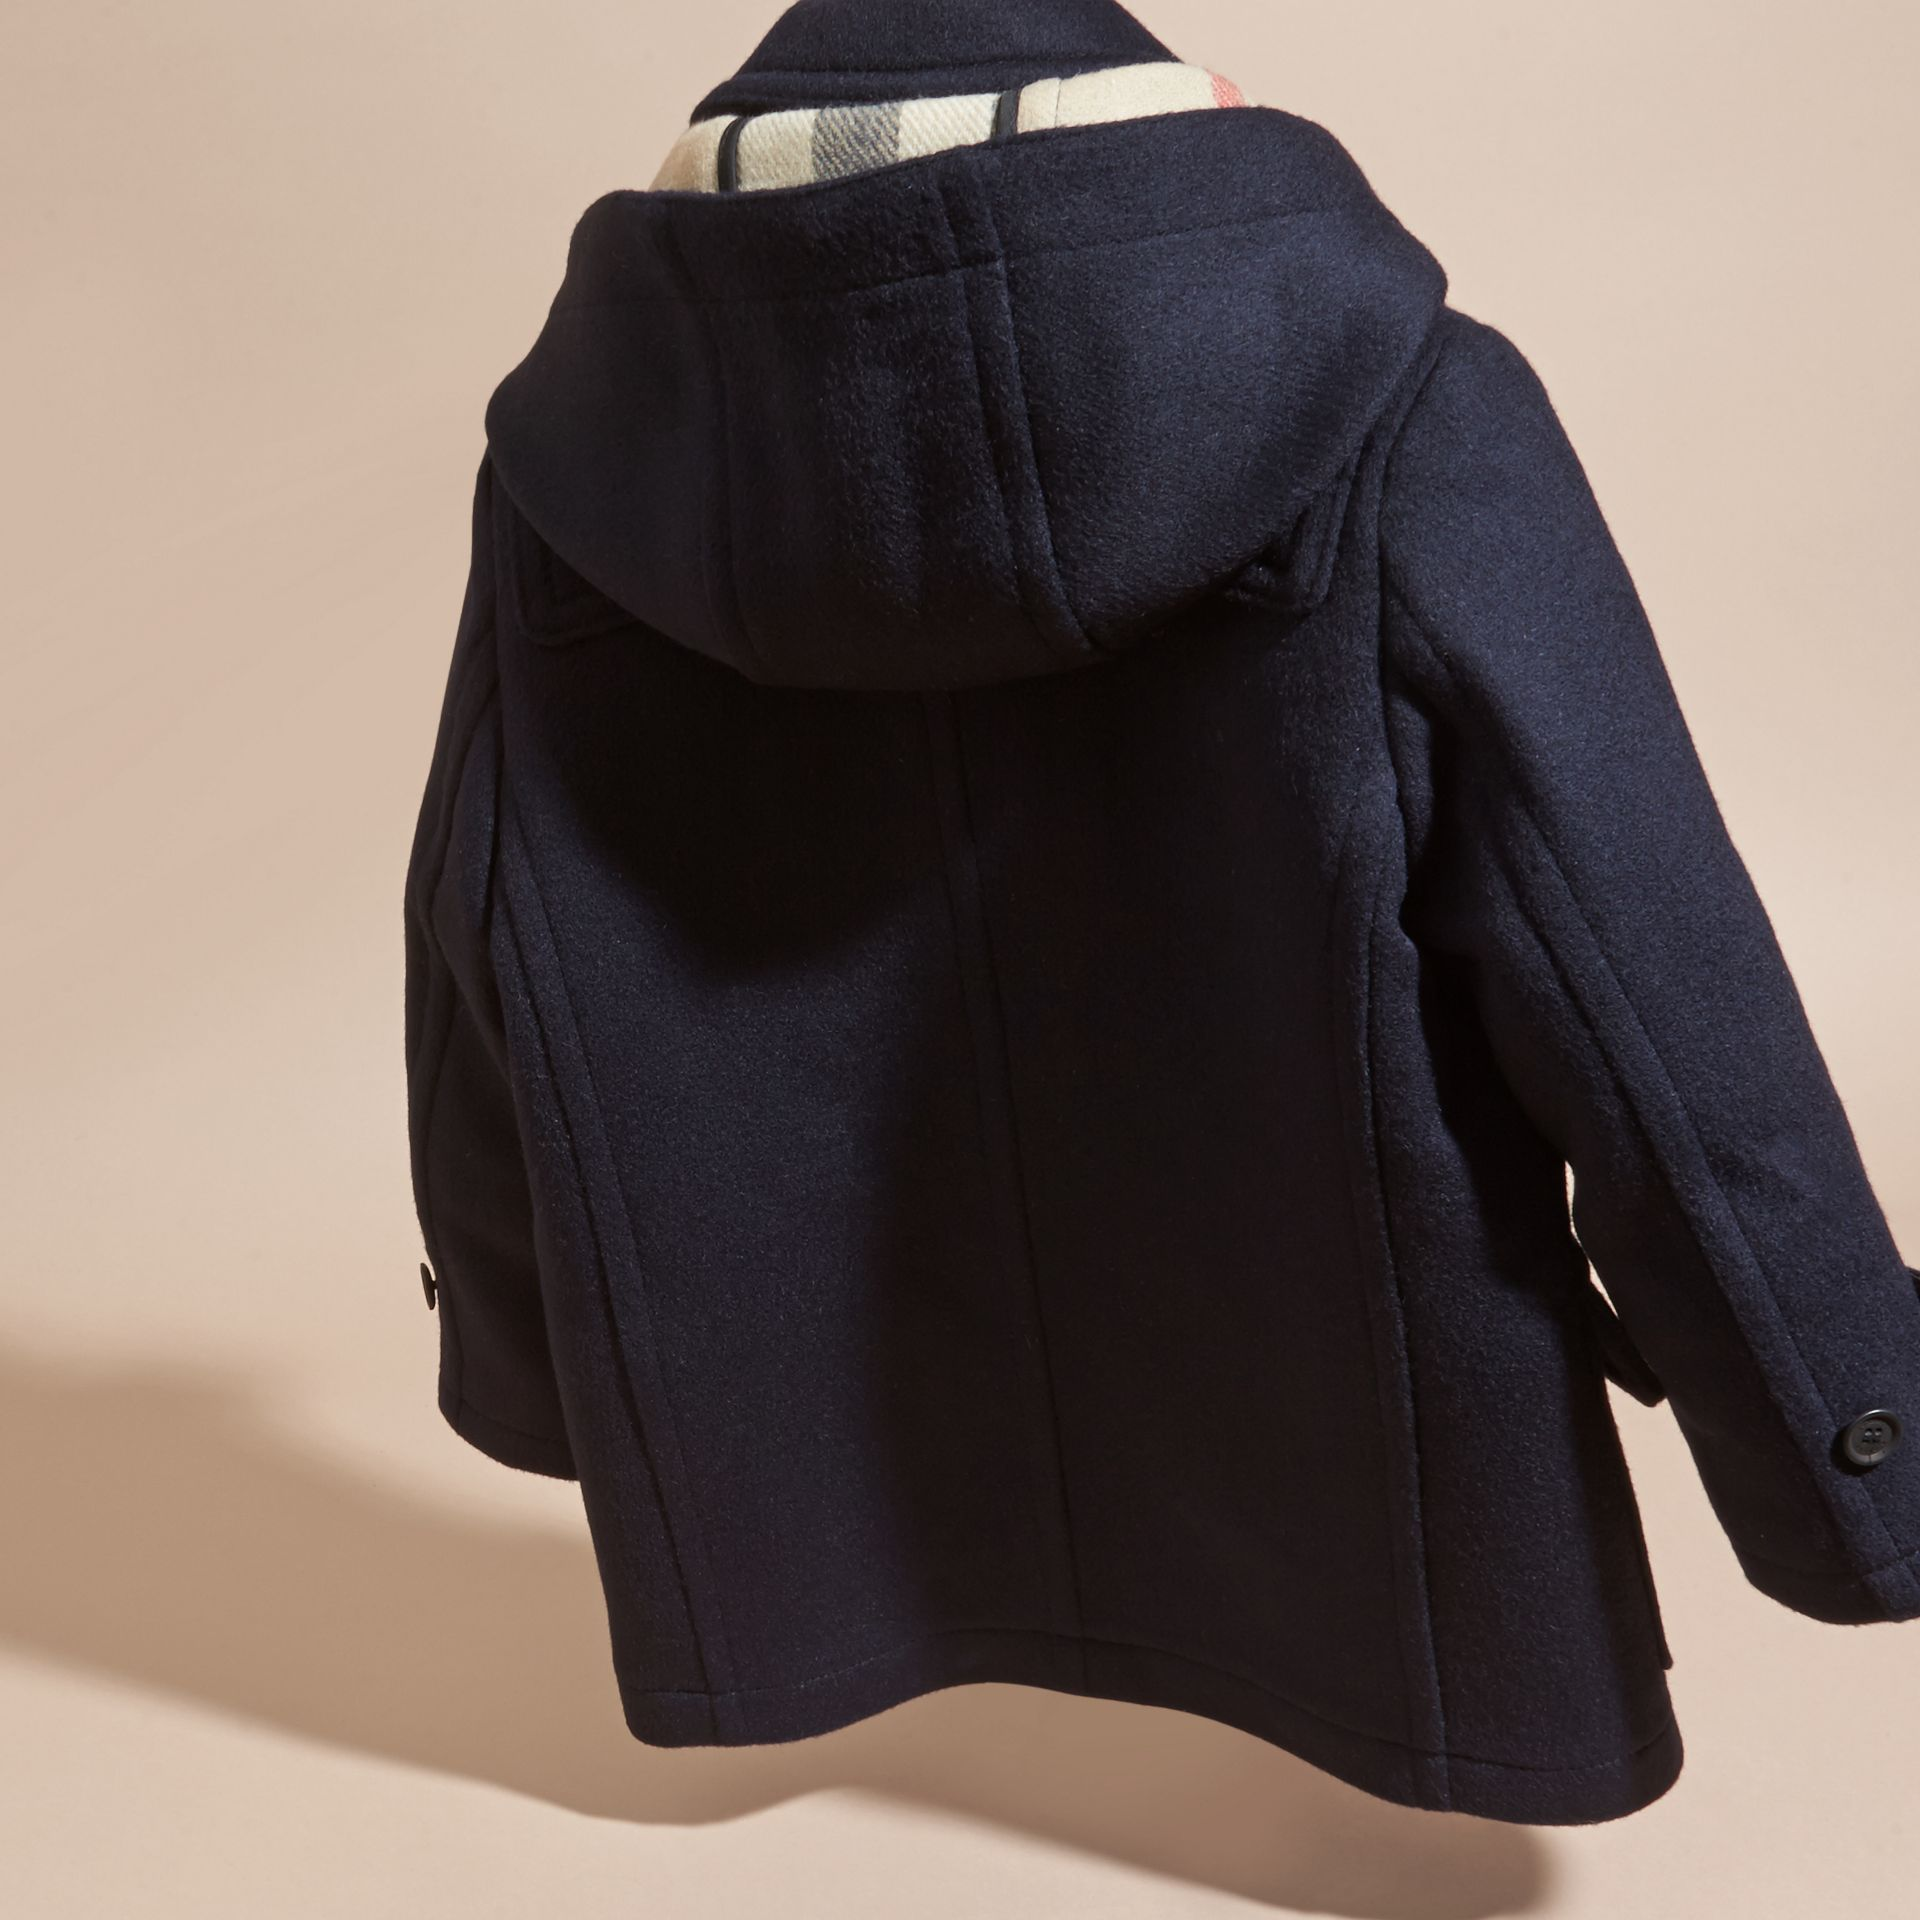 Dark indigo Wool Duffle Coat with Check-lined Hood Dark Indigo - gallery image 4